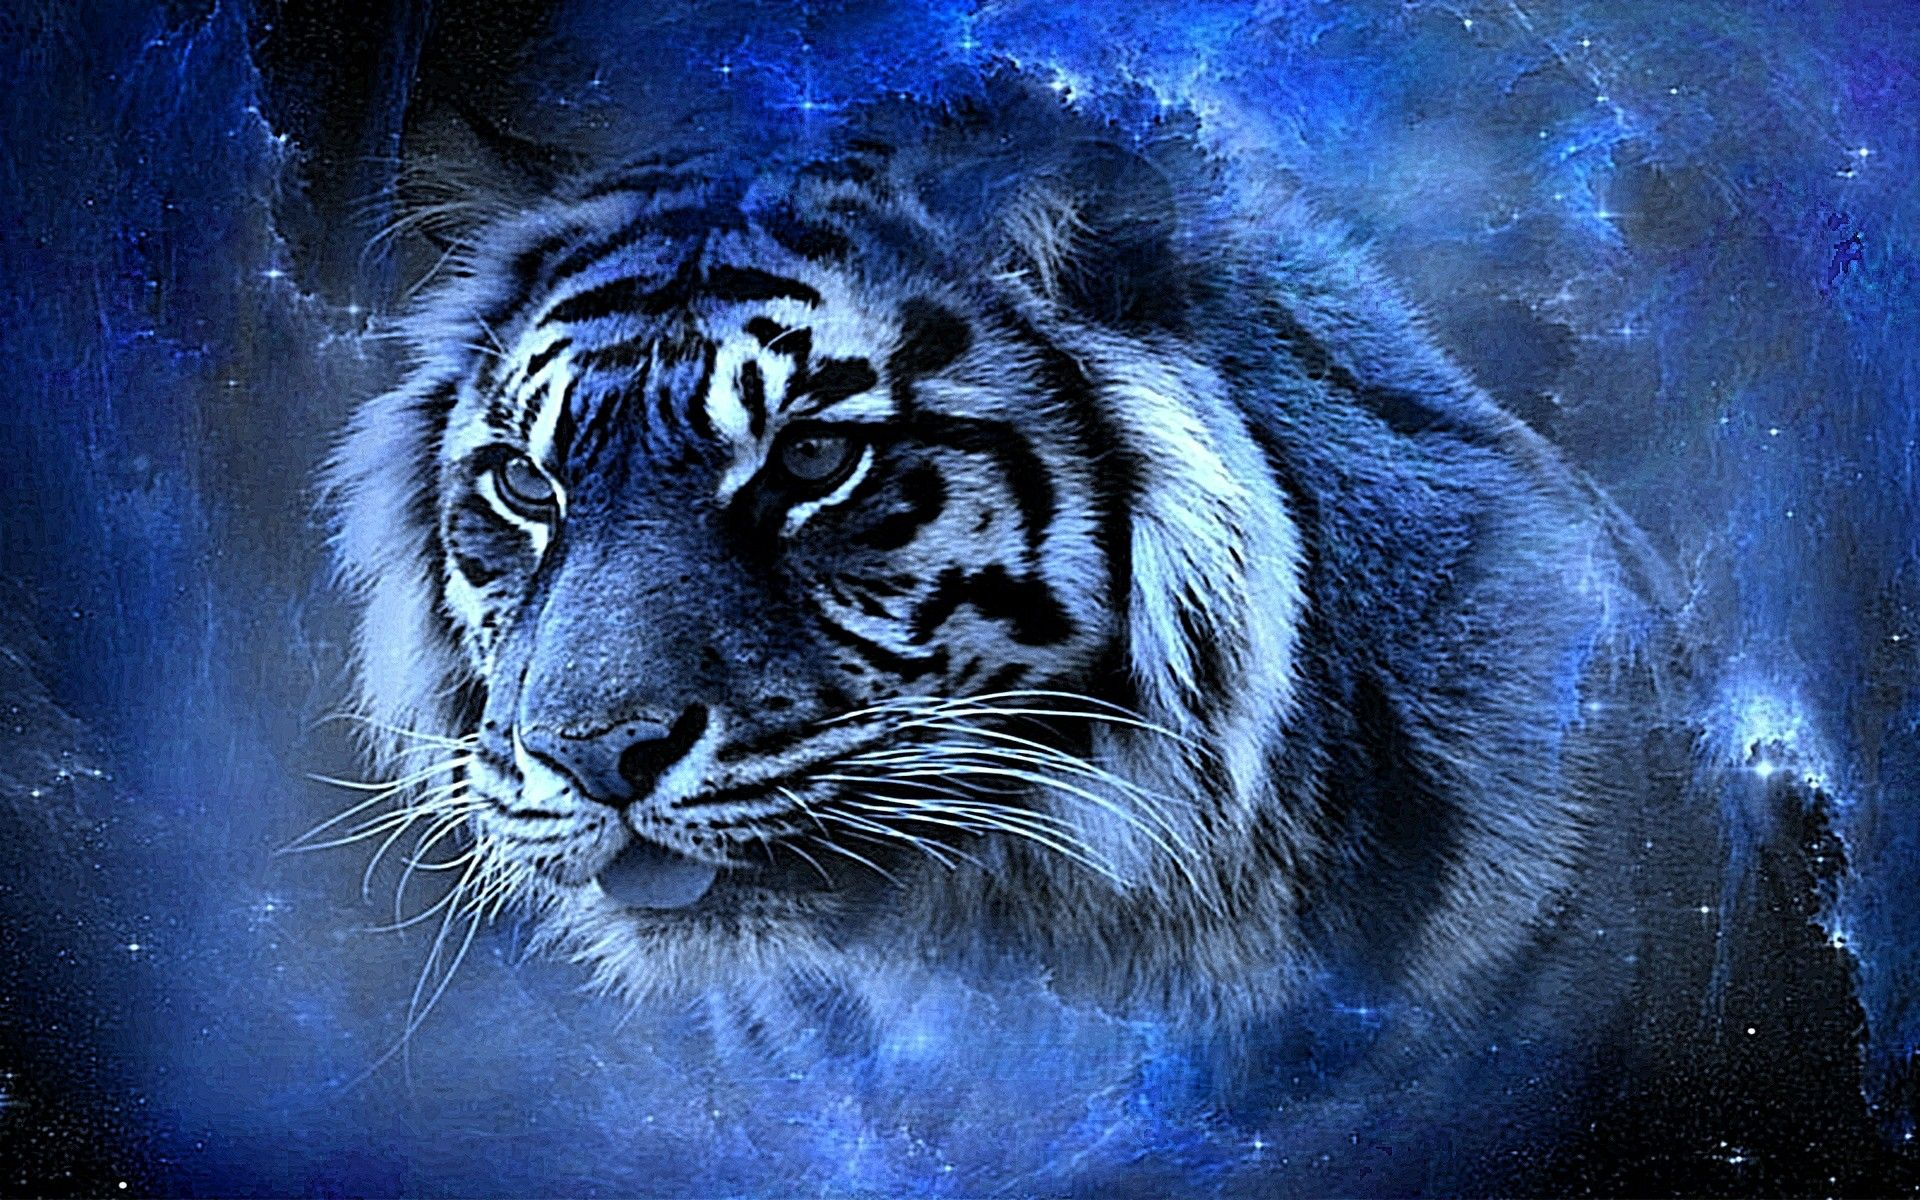 Tiger Wallpapers Download Group 19201200 Tiger Wallpapers 1920x1200